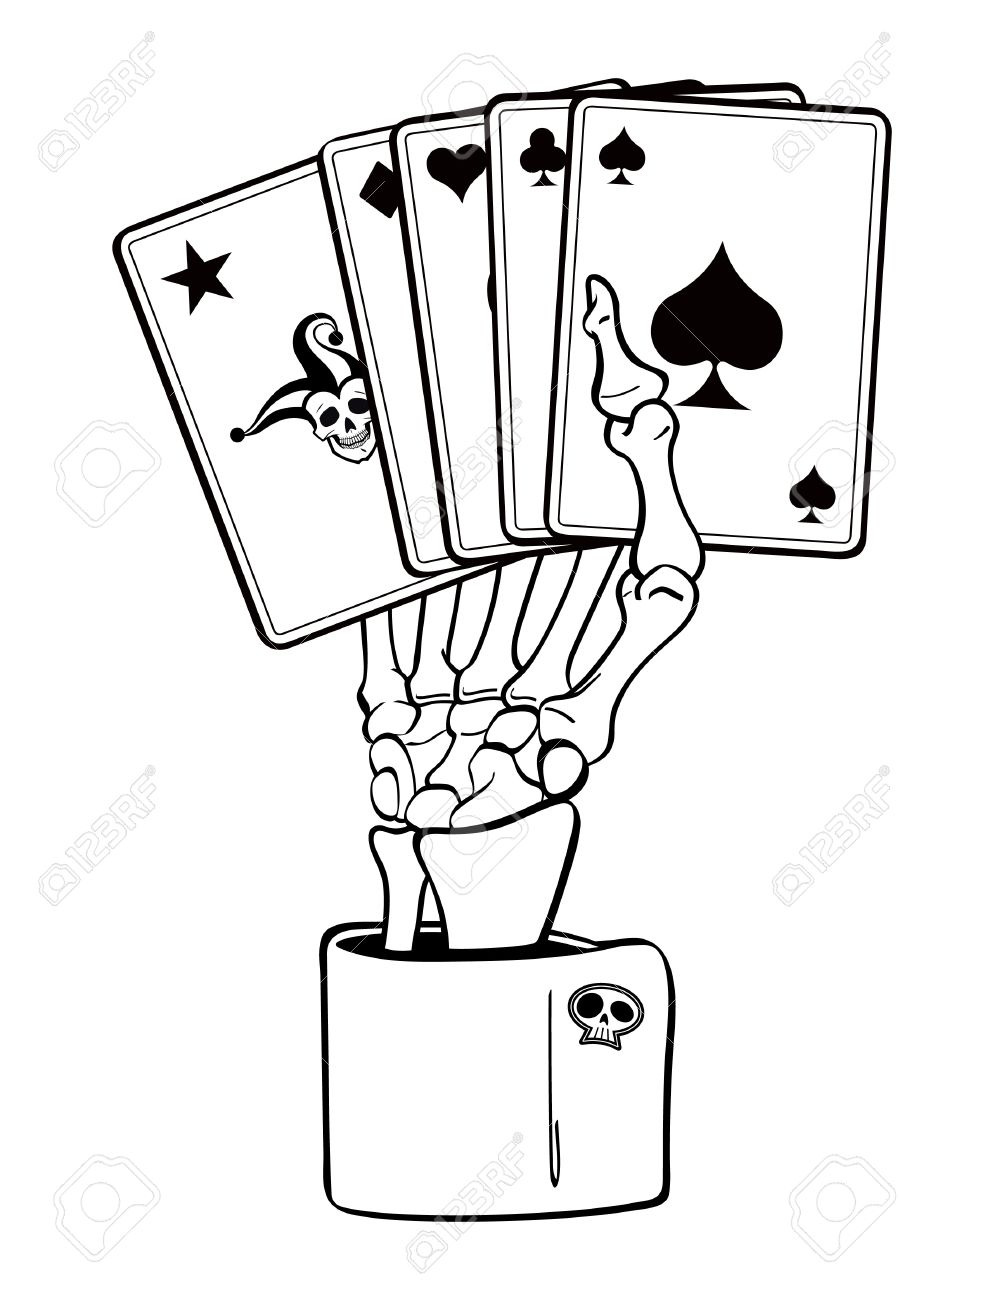 Poker playing drawing hands olivier surault immobilier baccarat